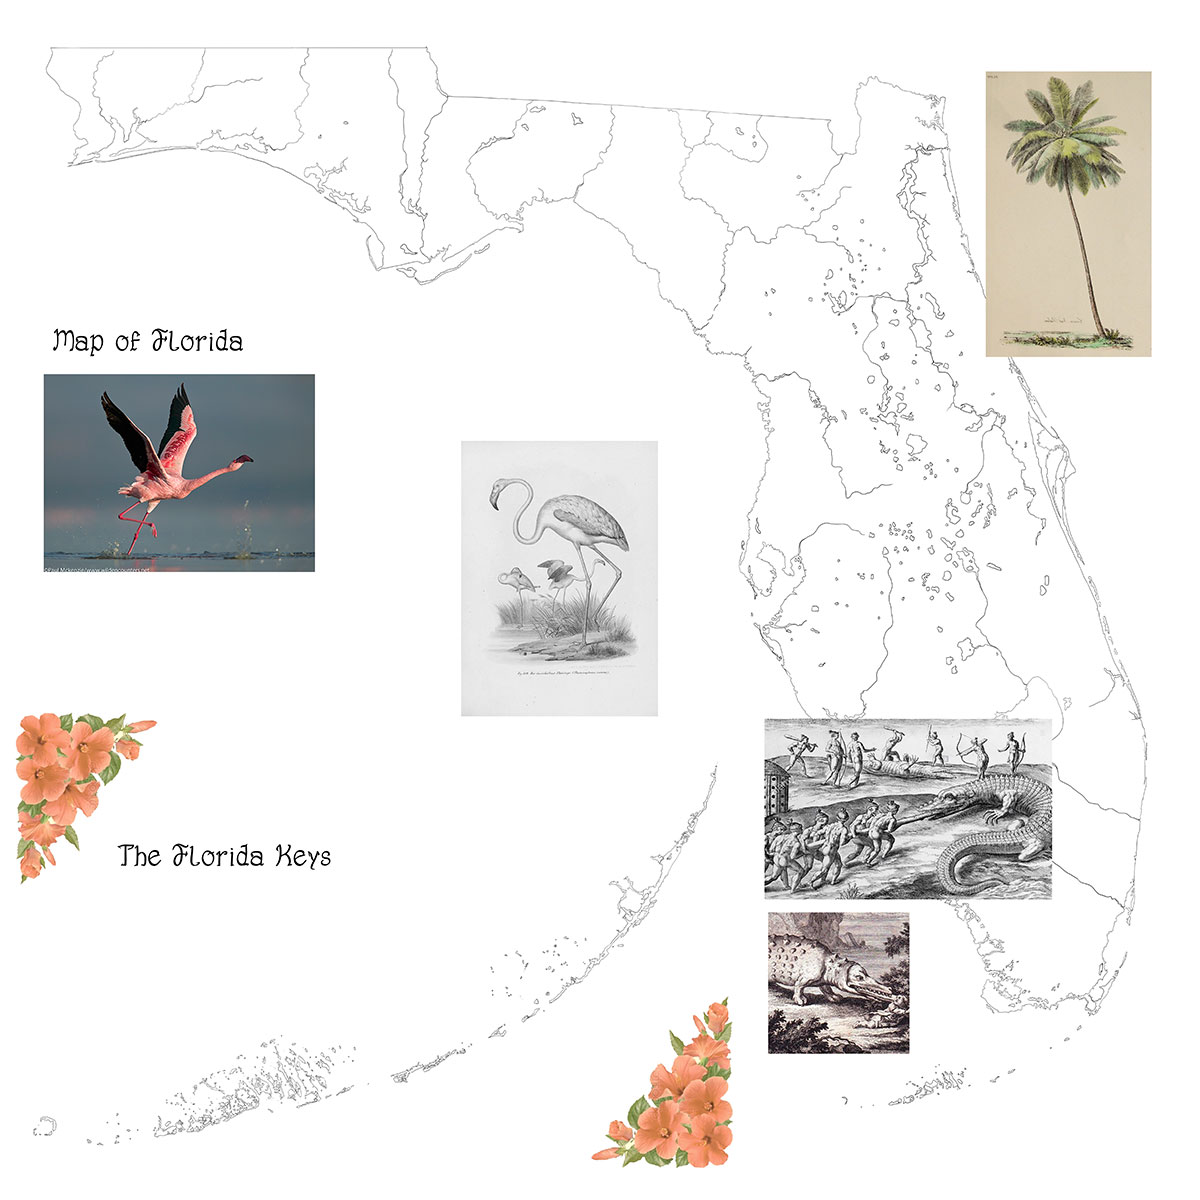 Designing the map of Florida State